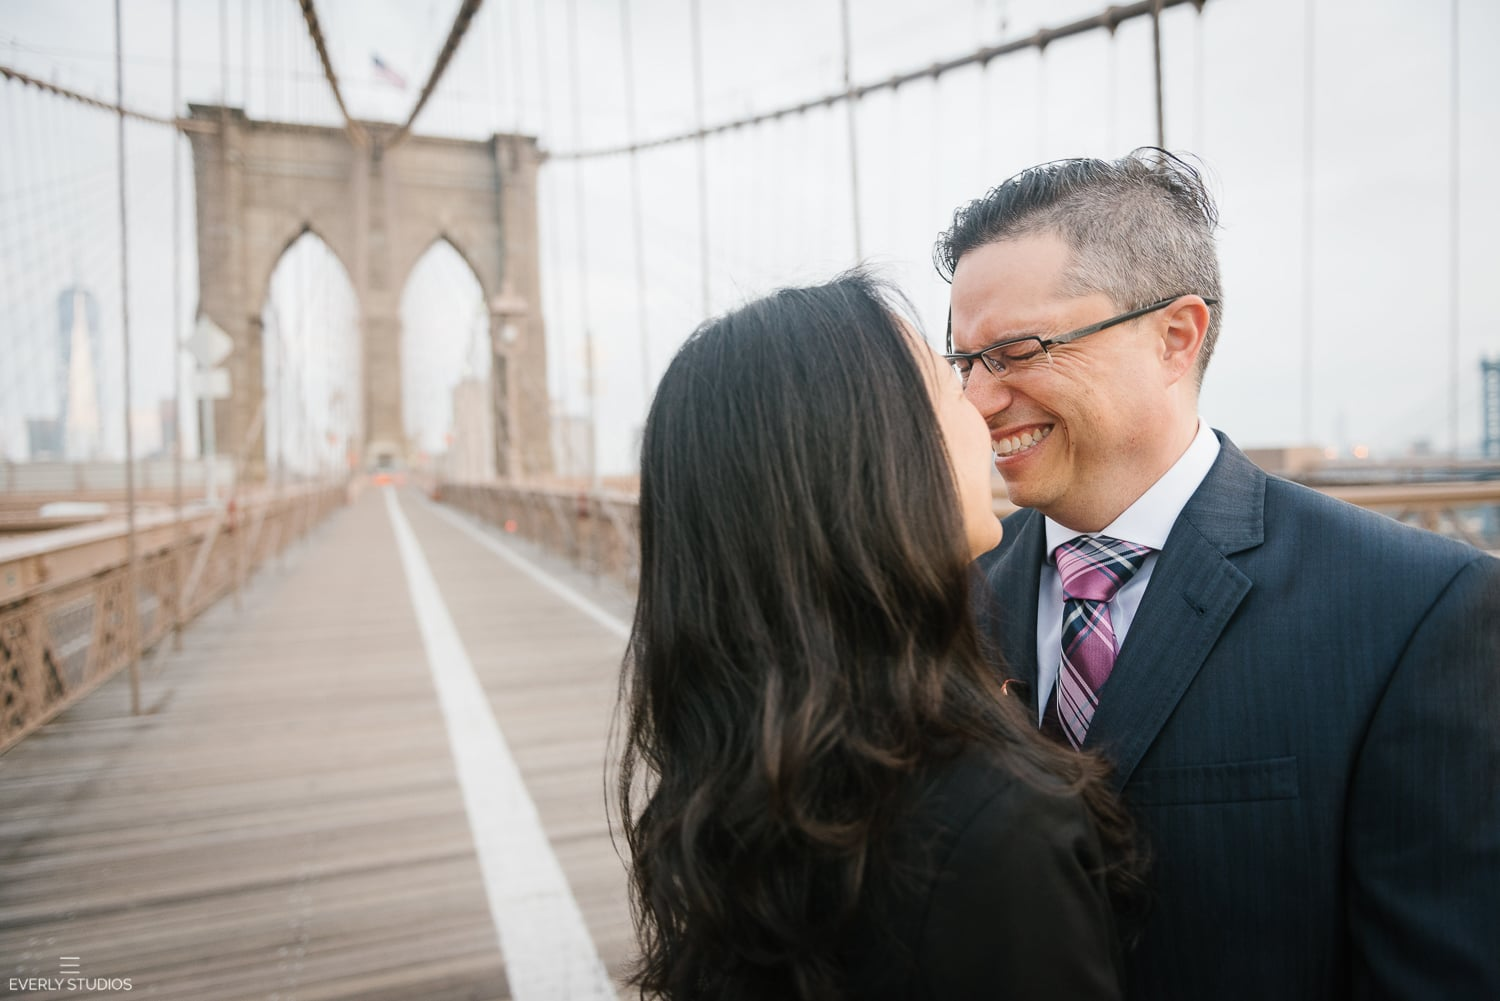 Brooklyn Bridge engagement photos. Photos by New York wedding photographer Everly Studios, www.everlystudios.com